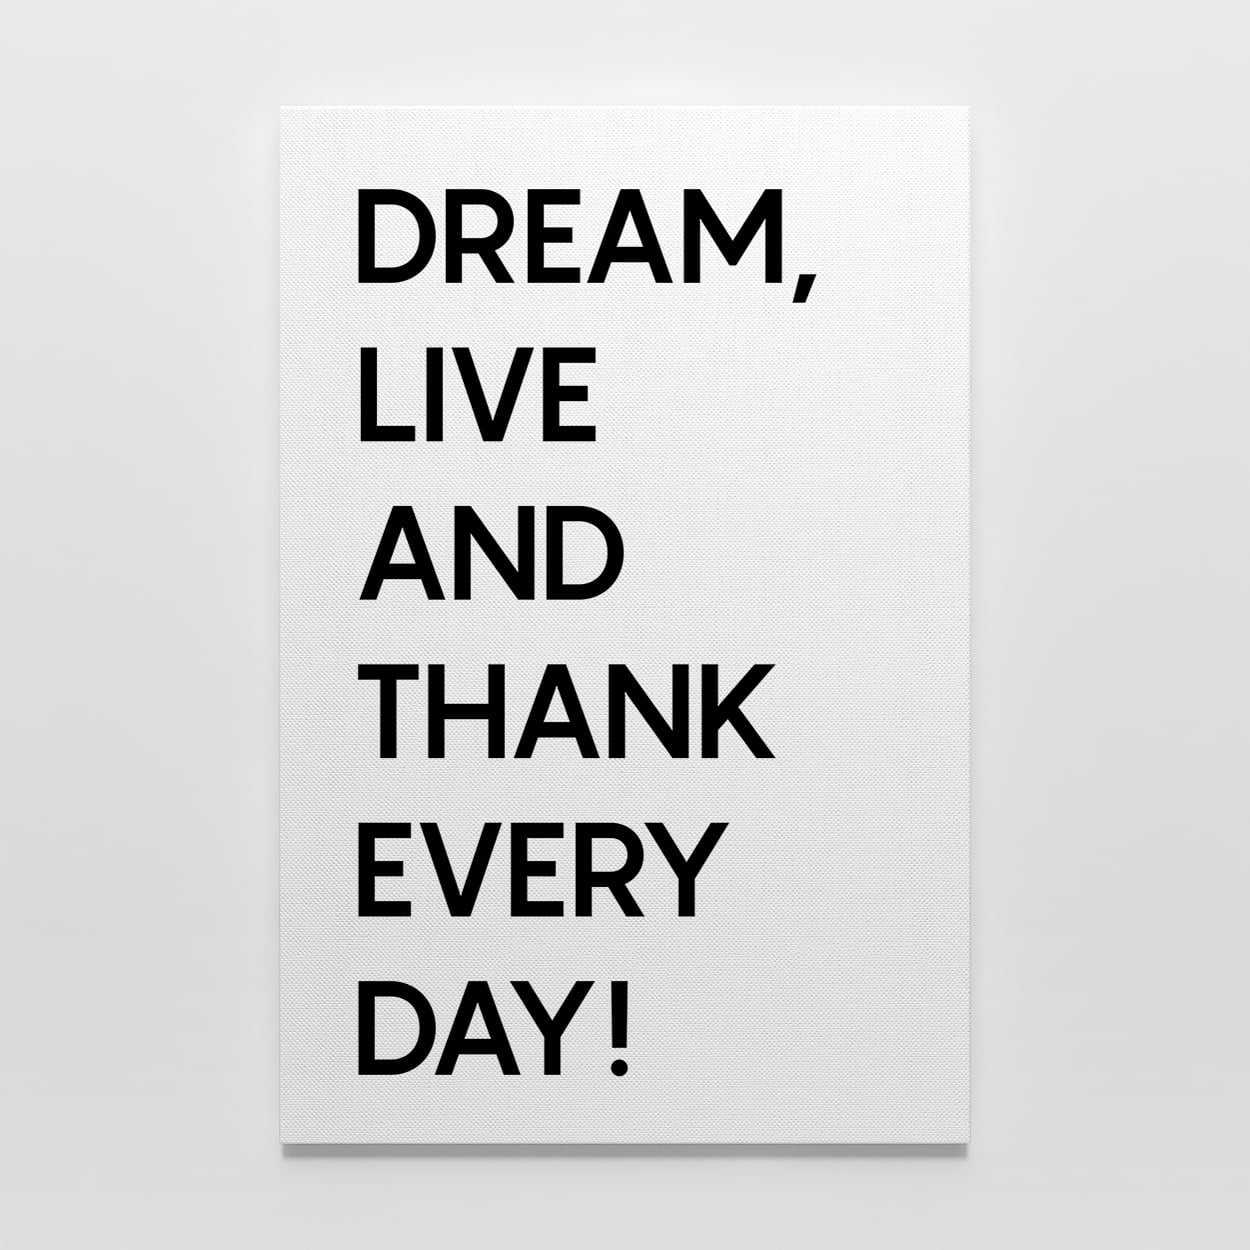 Quadro Frase Dream Live And Thank Every Day Preto E Branco